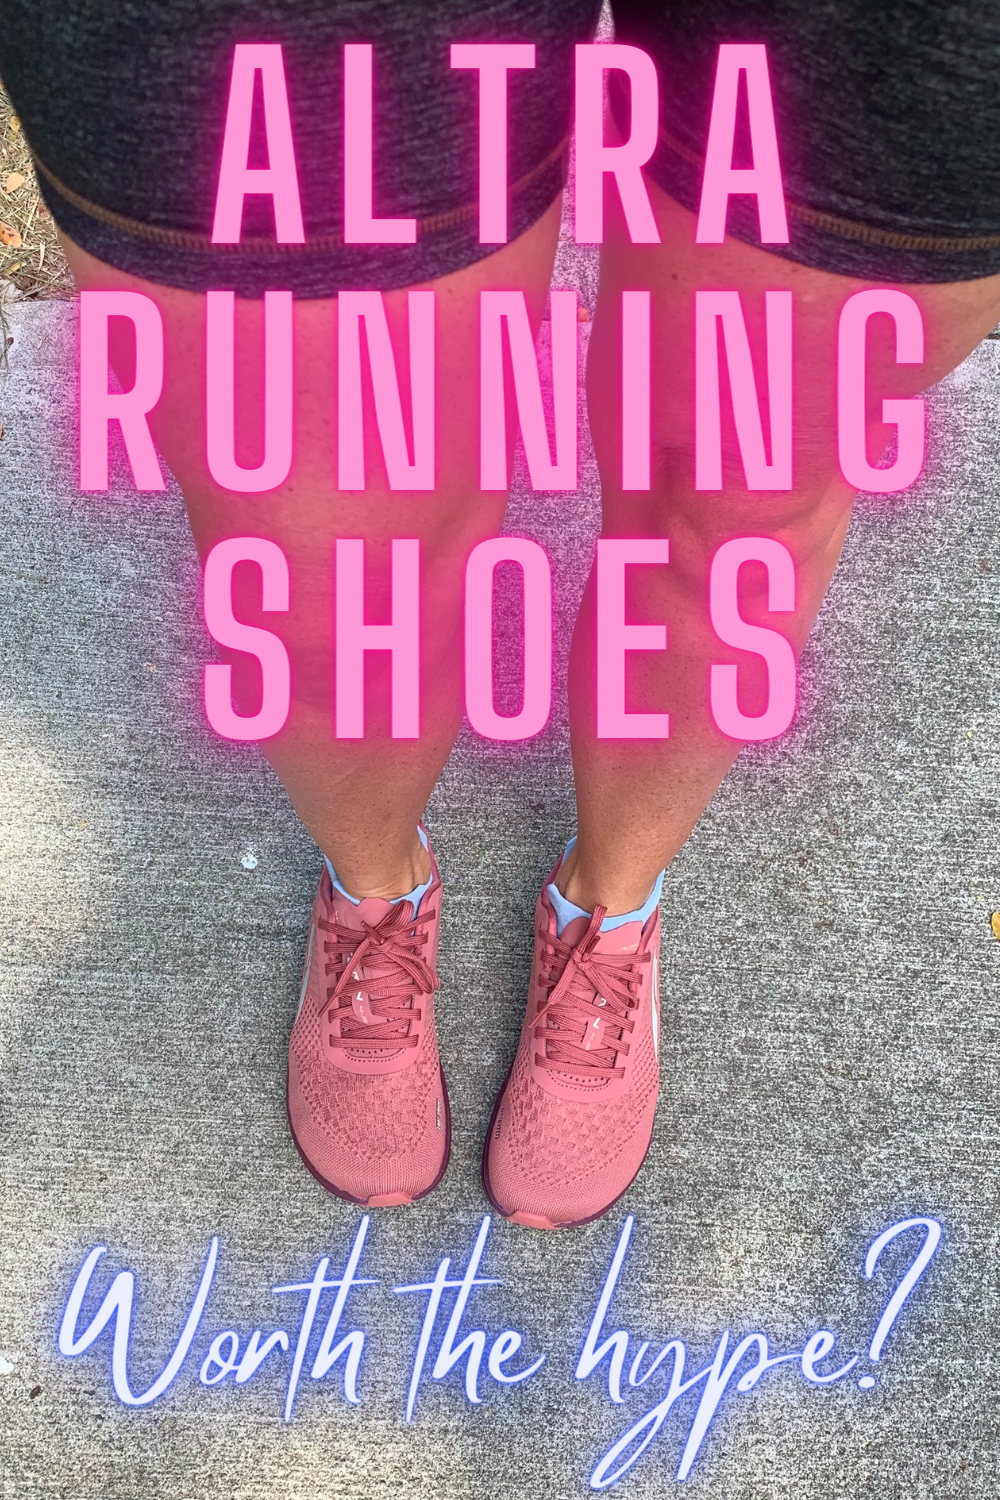 My Thoughts On Altra Running Shoes - Are you considering a pair of Altra running shoes? Here are my honest thoughts! | Altra Running Shoes Women - Altra running - Altra sneakers - Altra footwear - Zero drop sneakers